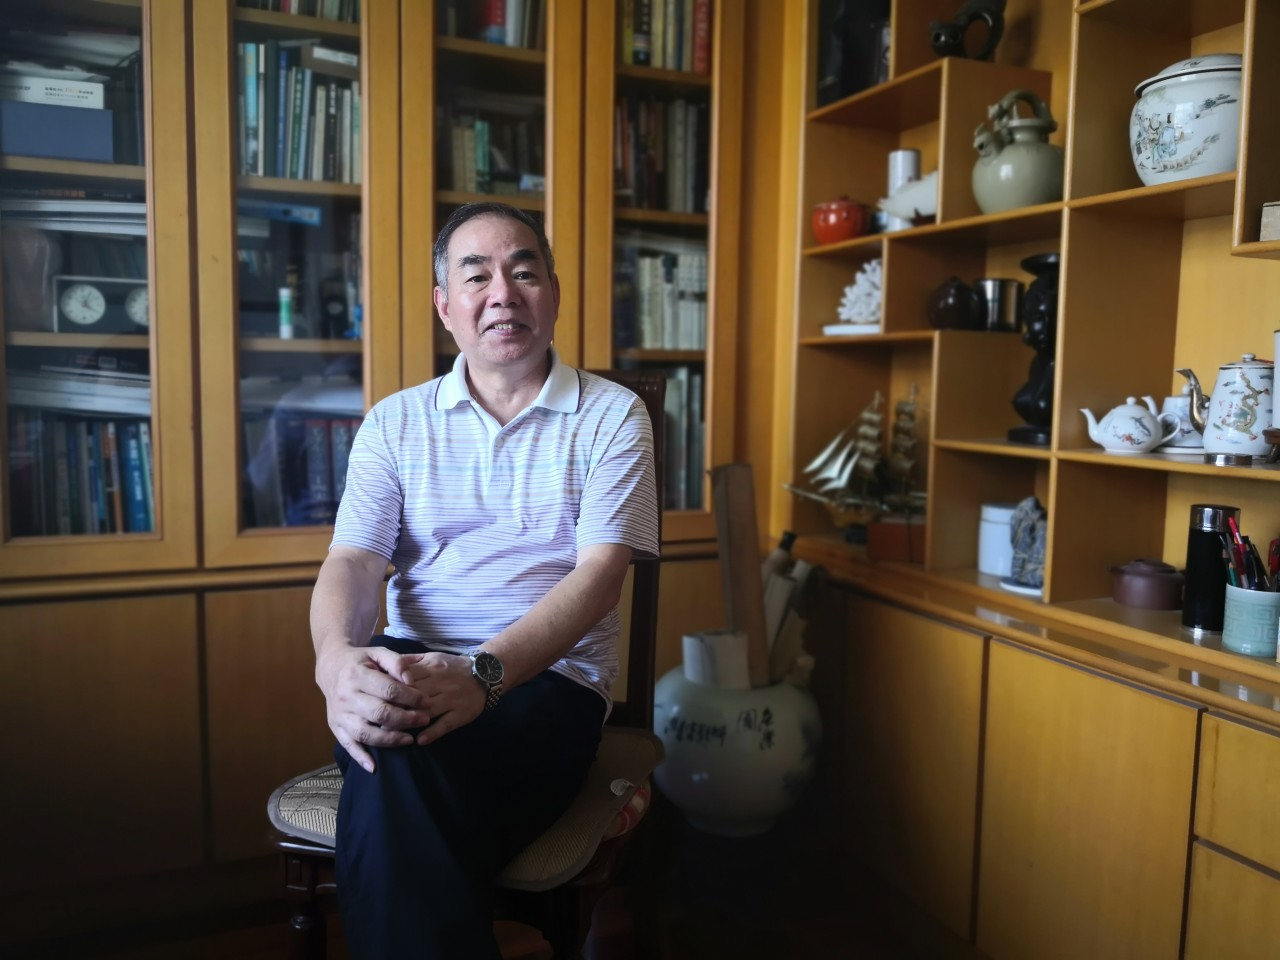 The now retired Qiu Yaotian is enjoying his twilight years, busy with things he had no chance to do in his younger days. (Photo: Yang Danxu)